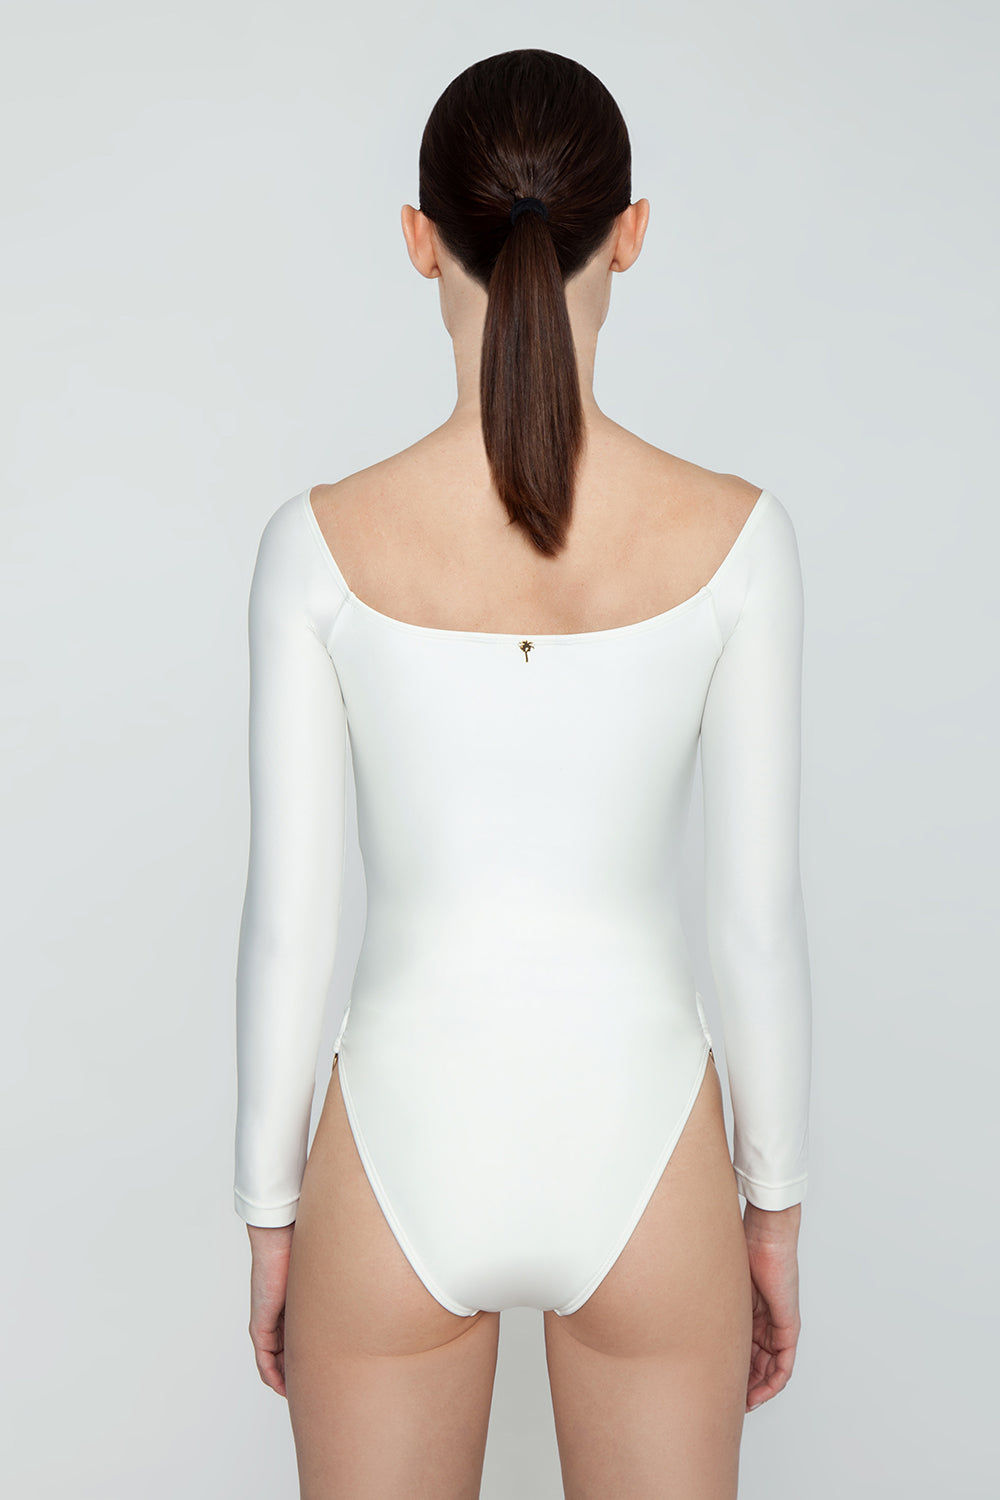 AGUA DE COCO Brazilian Off Shoulder Side Detail One Piece Swimsuit - Off White One Piece | Off White| Agua De Coco Brazilian Off Shoulder Side Detail One Piece Swimsuit - Off White White one piece Off shoulder Long sleeves  Side ring hardware detail  Cheeky - moderate coverage Back View